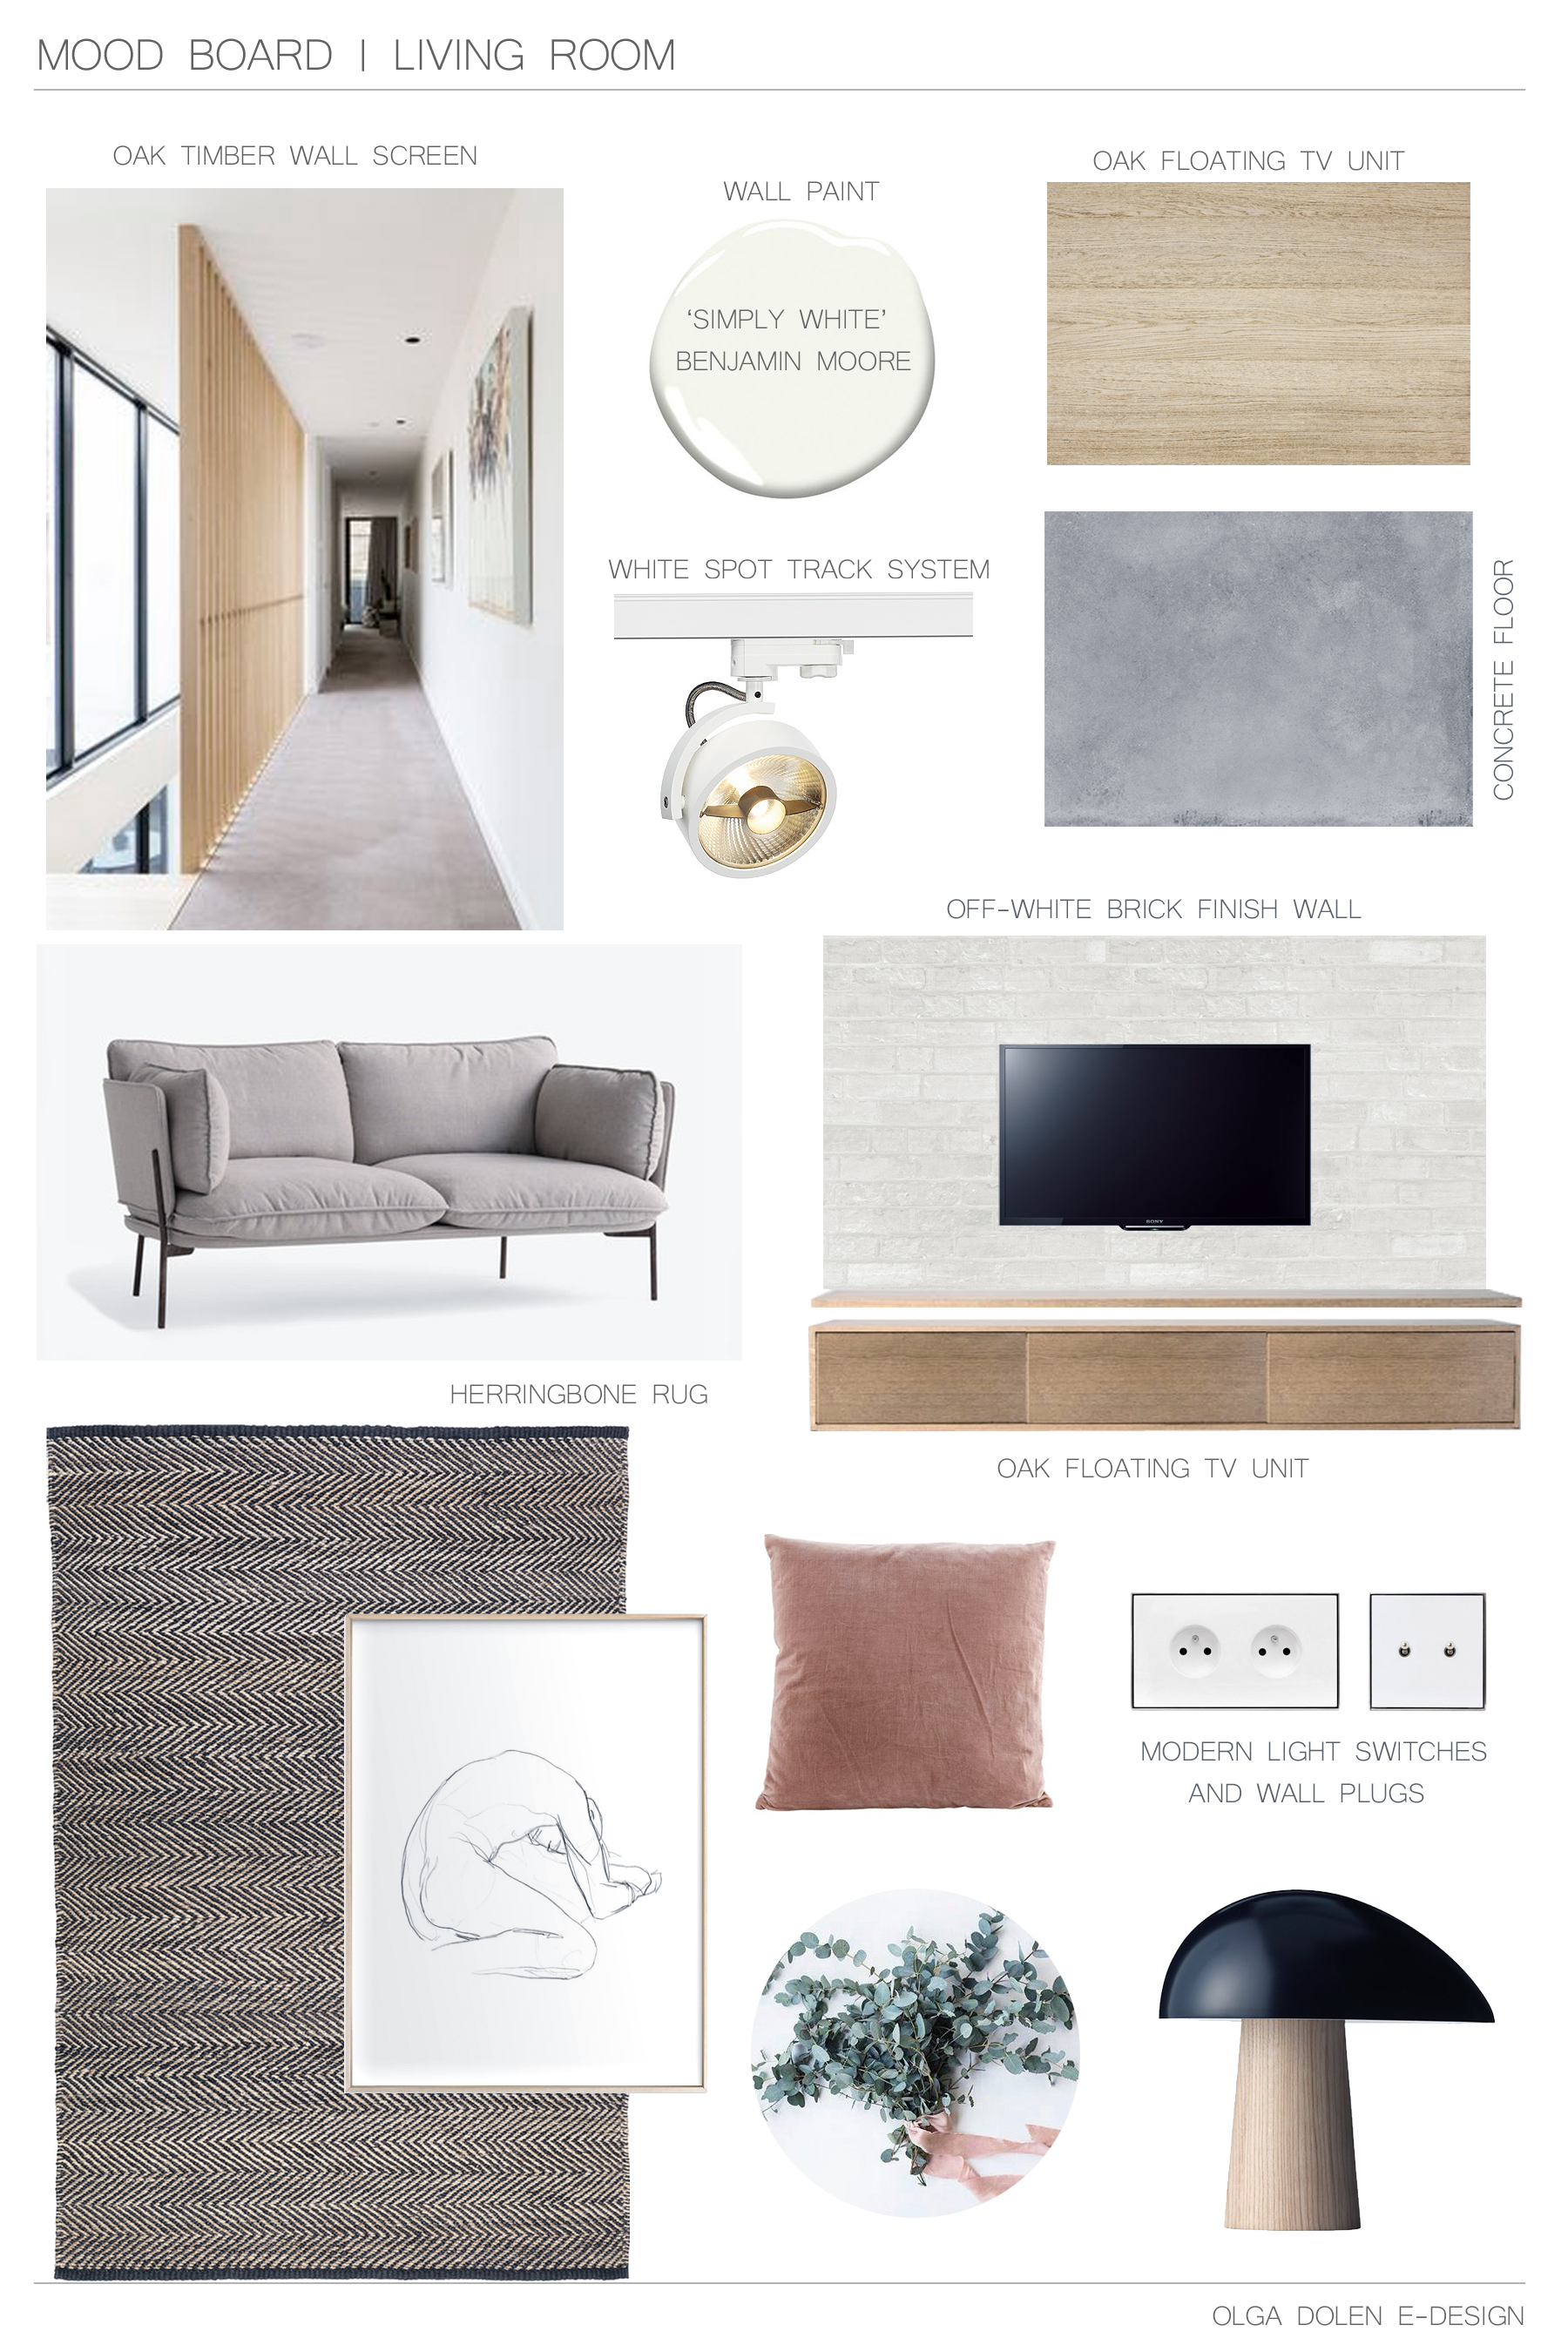 living room design, moodboard living room,